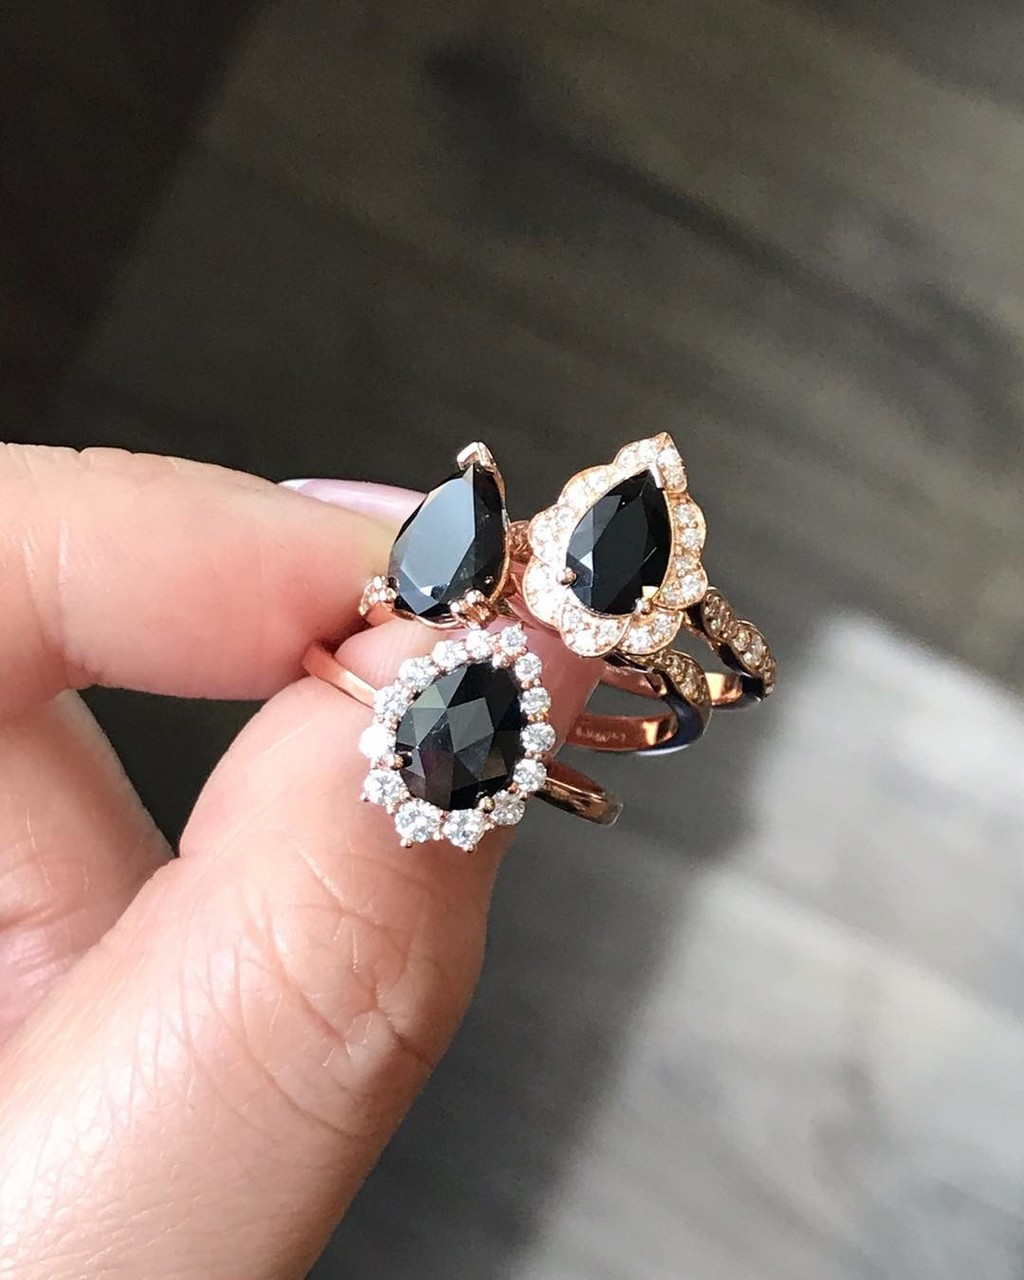 Whether you like vintage or modern inspiration, solitaire or halo style, rose cut or brilliant cut black diamond, or even black spinel